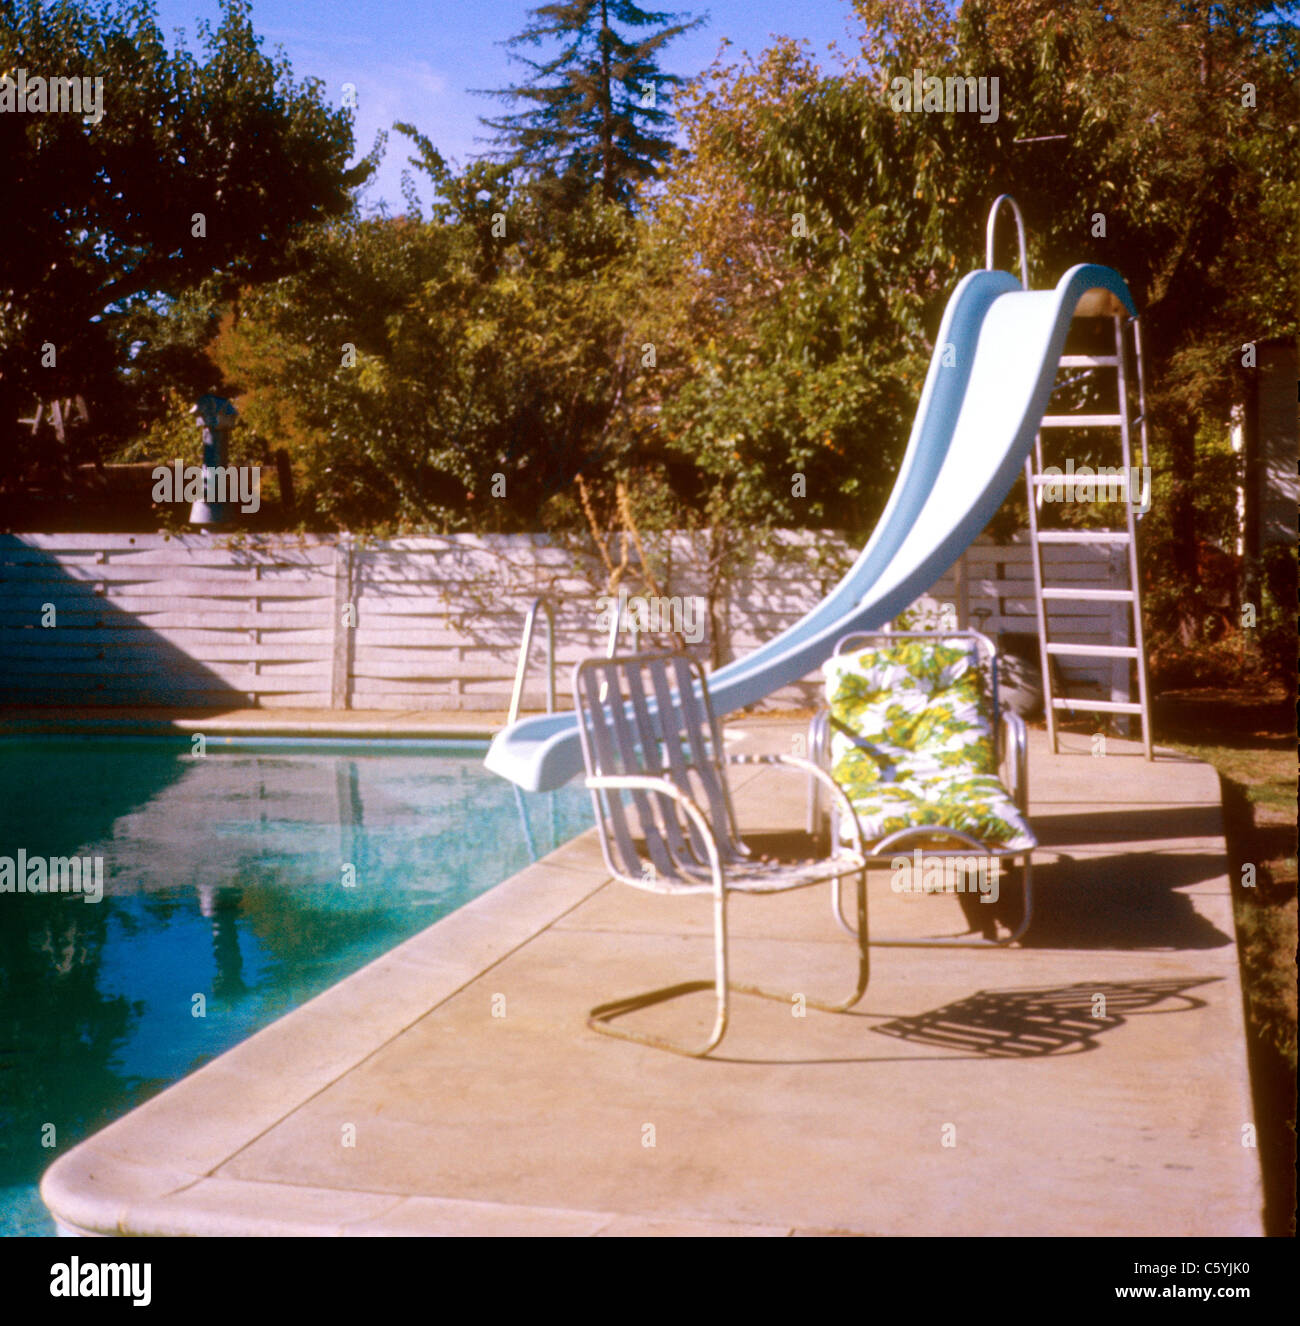 backyard dug in swimming pool with slide and 70s chair 1977 1970s